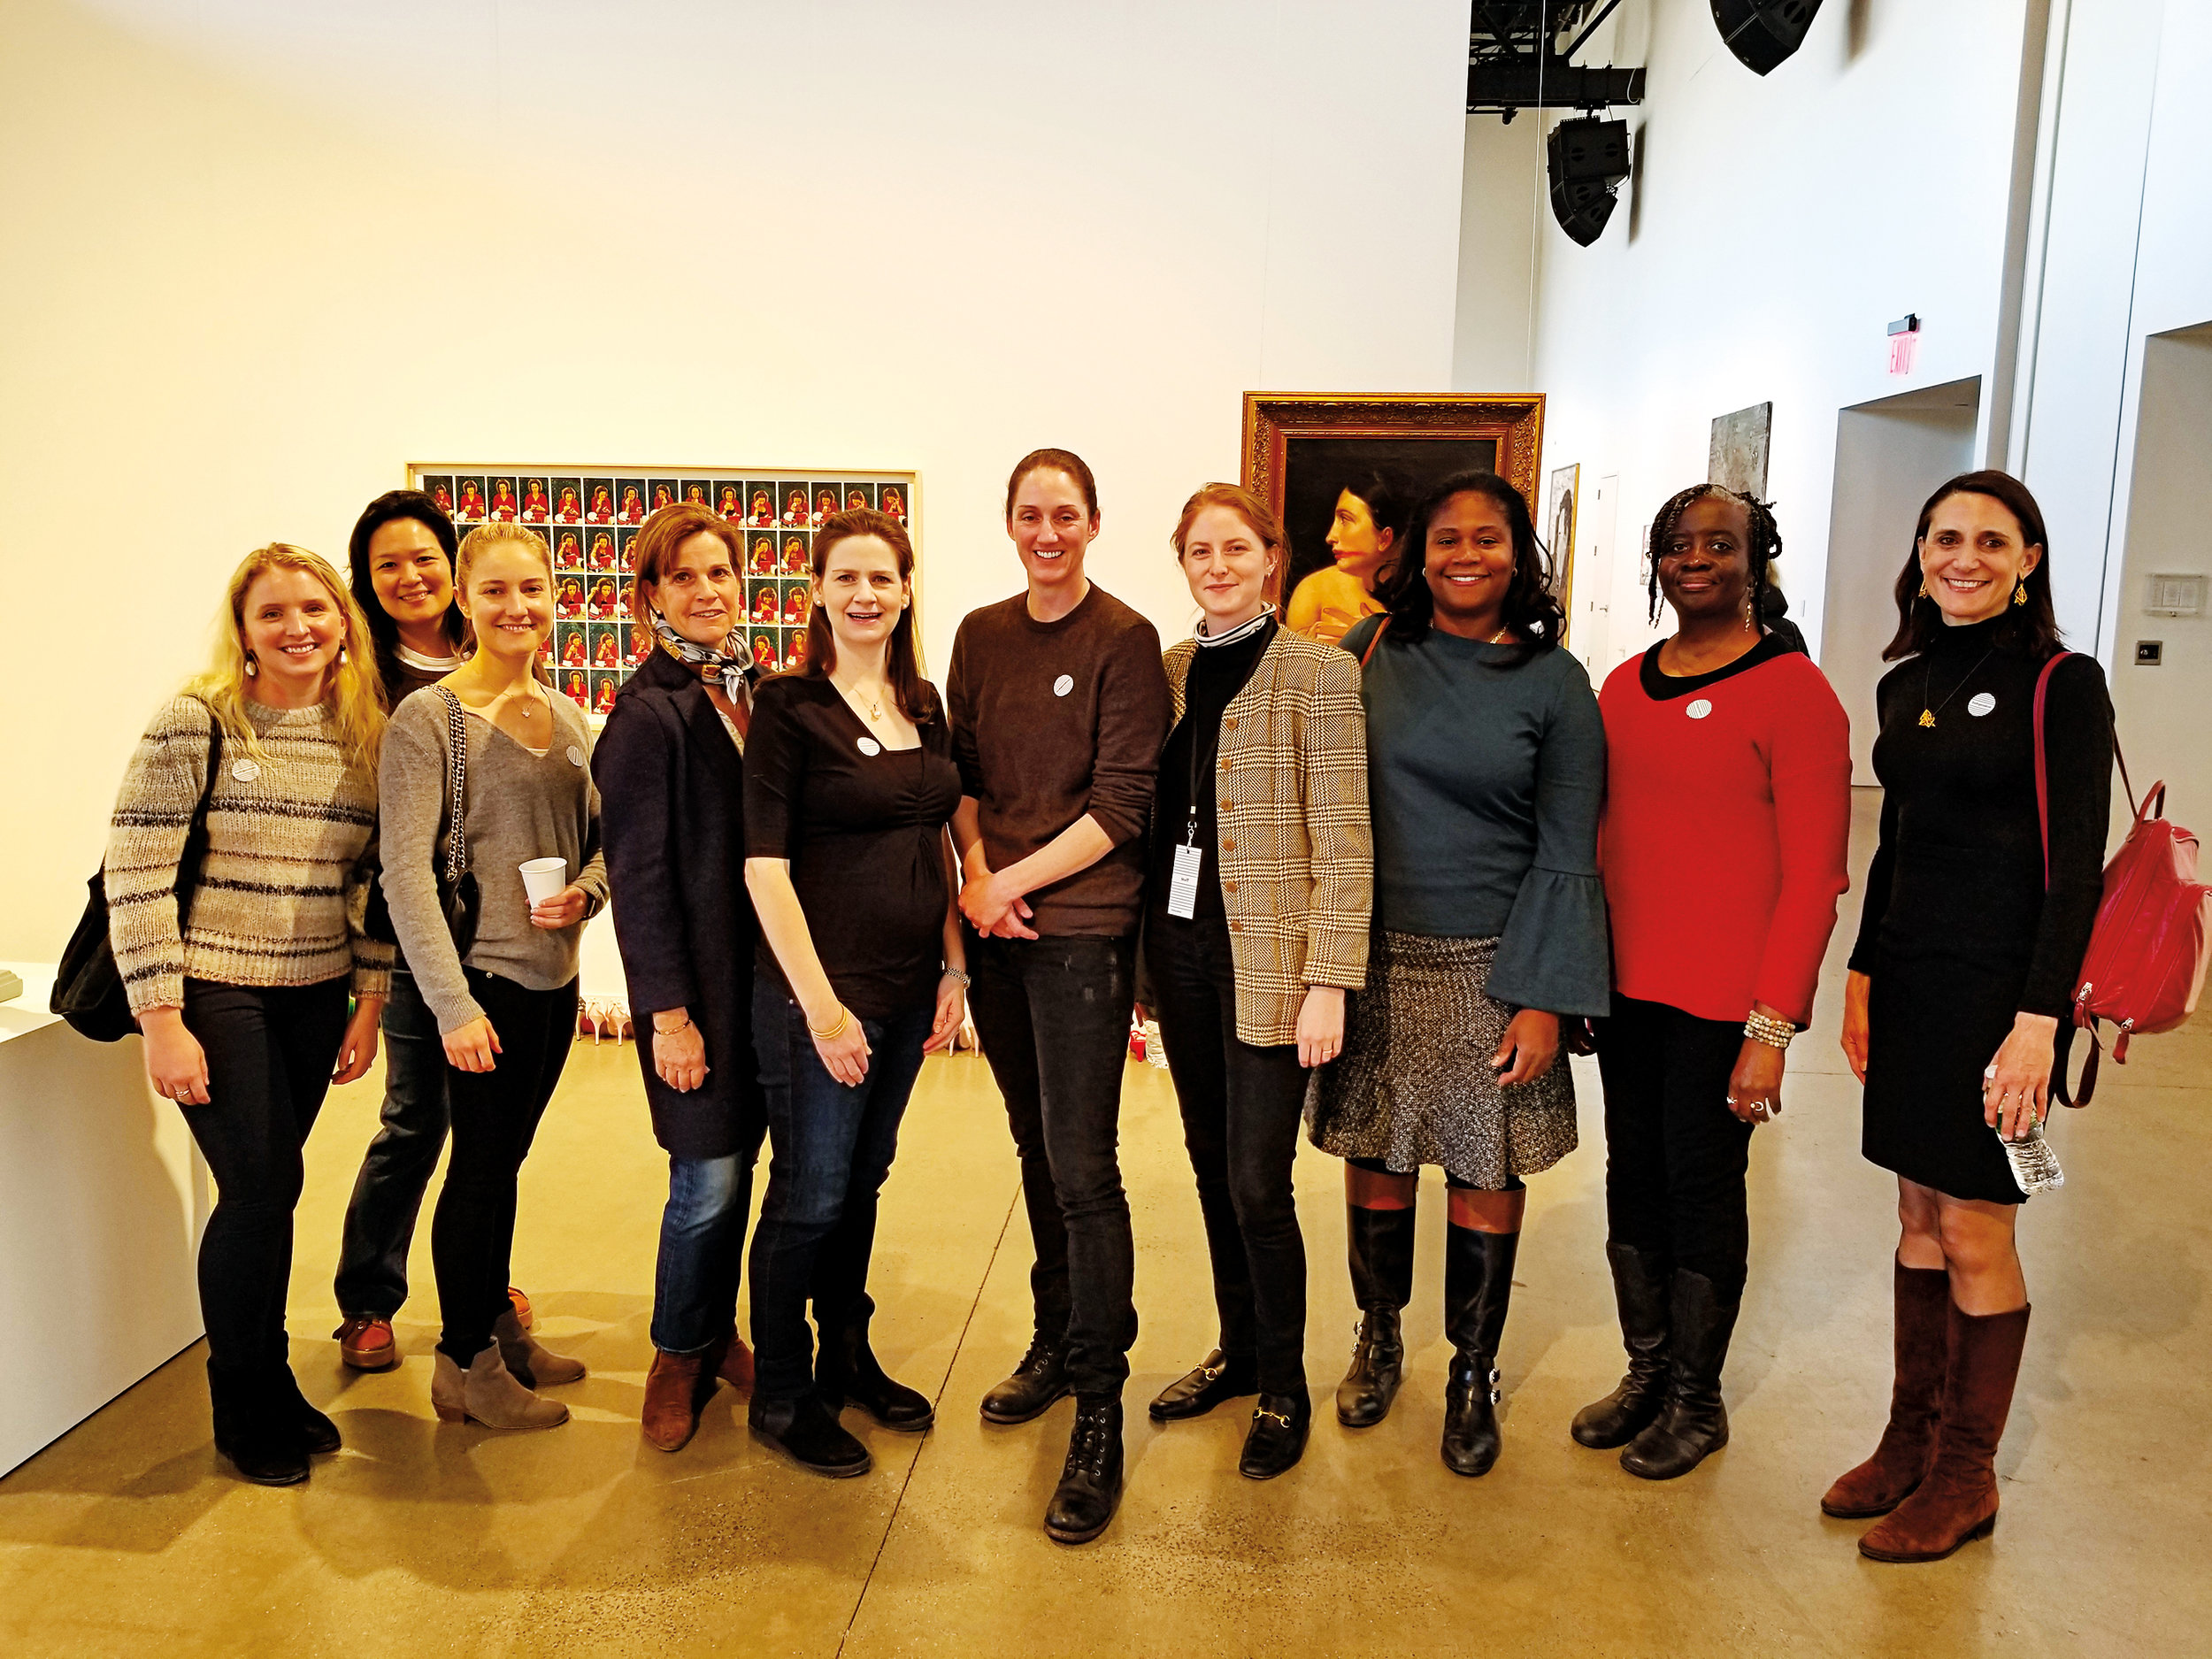 Alix Dana '07 hosted an SPS XIX Society event at a contemporary art fair in Tribeca. Paulies in attendance were (l. to r.) India Laughlin '07, Janice Lee '90, Kristen Kenney '07, Hilary Bedford Parkhurst '80, Lauren McKenna Surzyn '03, Tamsen Williams '91, Alix, Wendy Clarke Wilcox P'17, P'19, Stacy China '89, and Alison Horne-Rona '82.